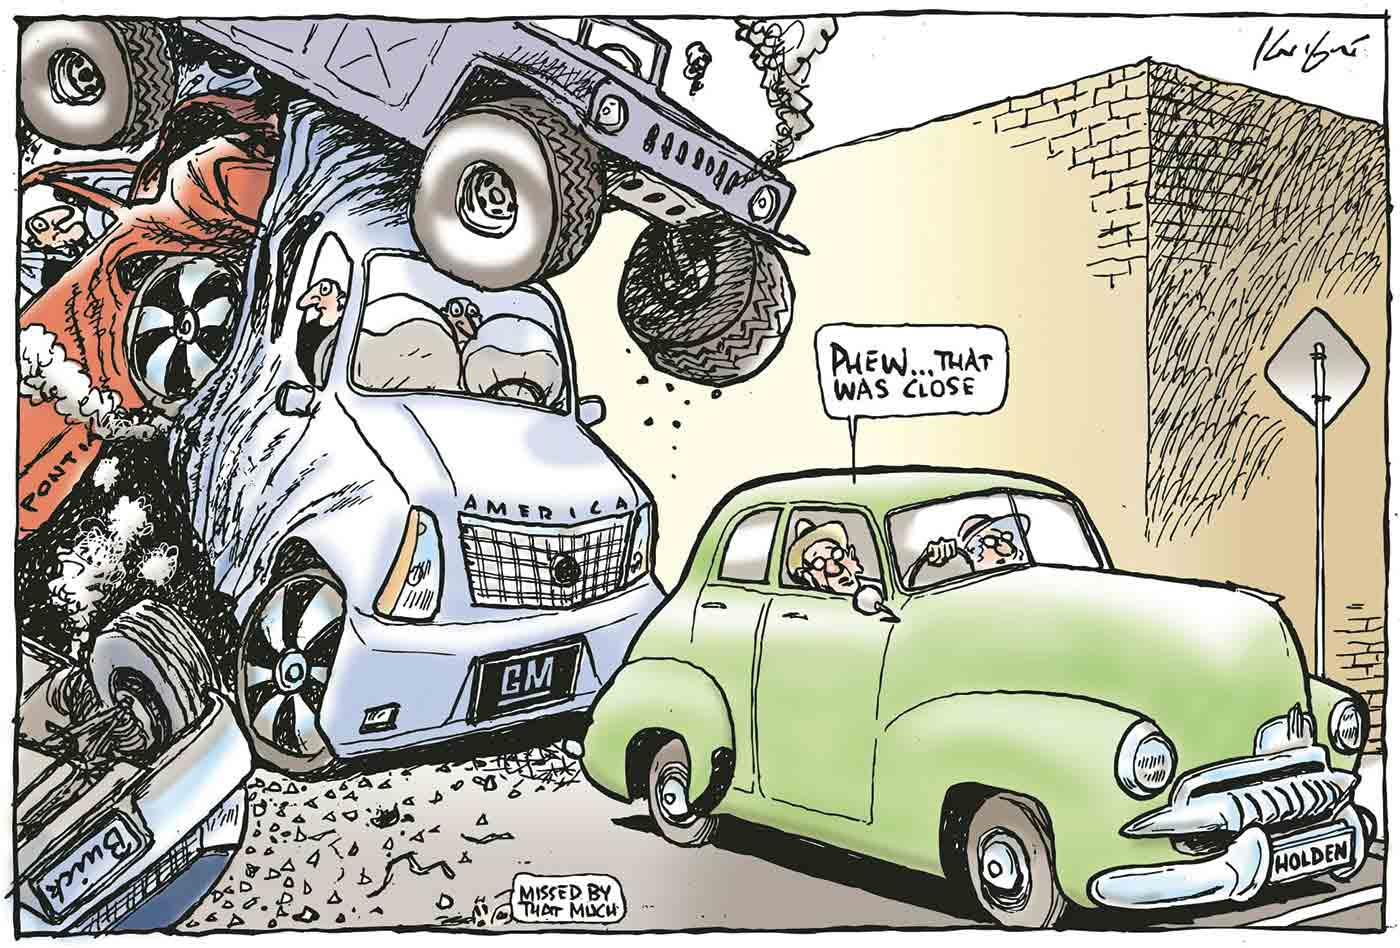 A colour cartoon depicting an elderly couple in an old green FJ 'Holden' stopped at an intersection, with a wrecked traffic scene piled up behind them. A 'GM' 'America' truck has been hit by a smoking Hummer, a wrecked 'Pontiac' and a 'Buick' which has come to rest on its roof. The hat-wearing male Holden driver says, 'Phew that was close'. A small figure in the foreground says, 'Missed by that much'. - click to view larger image